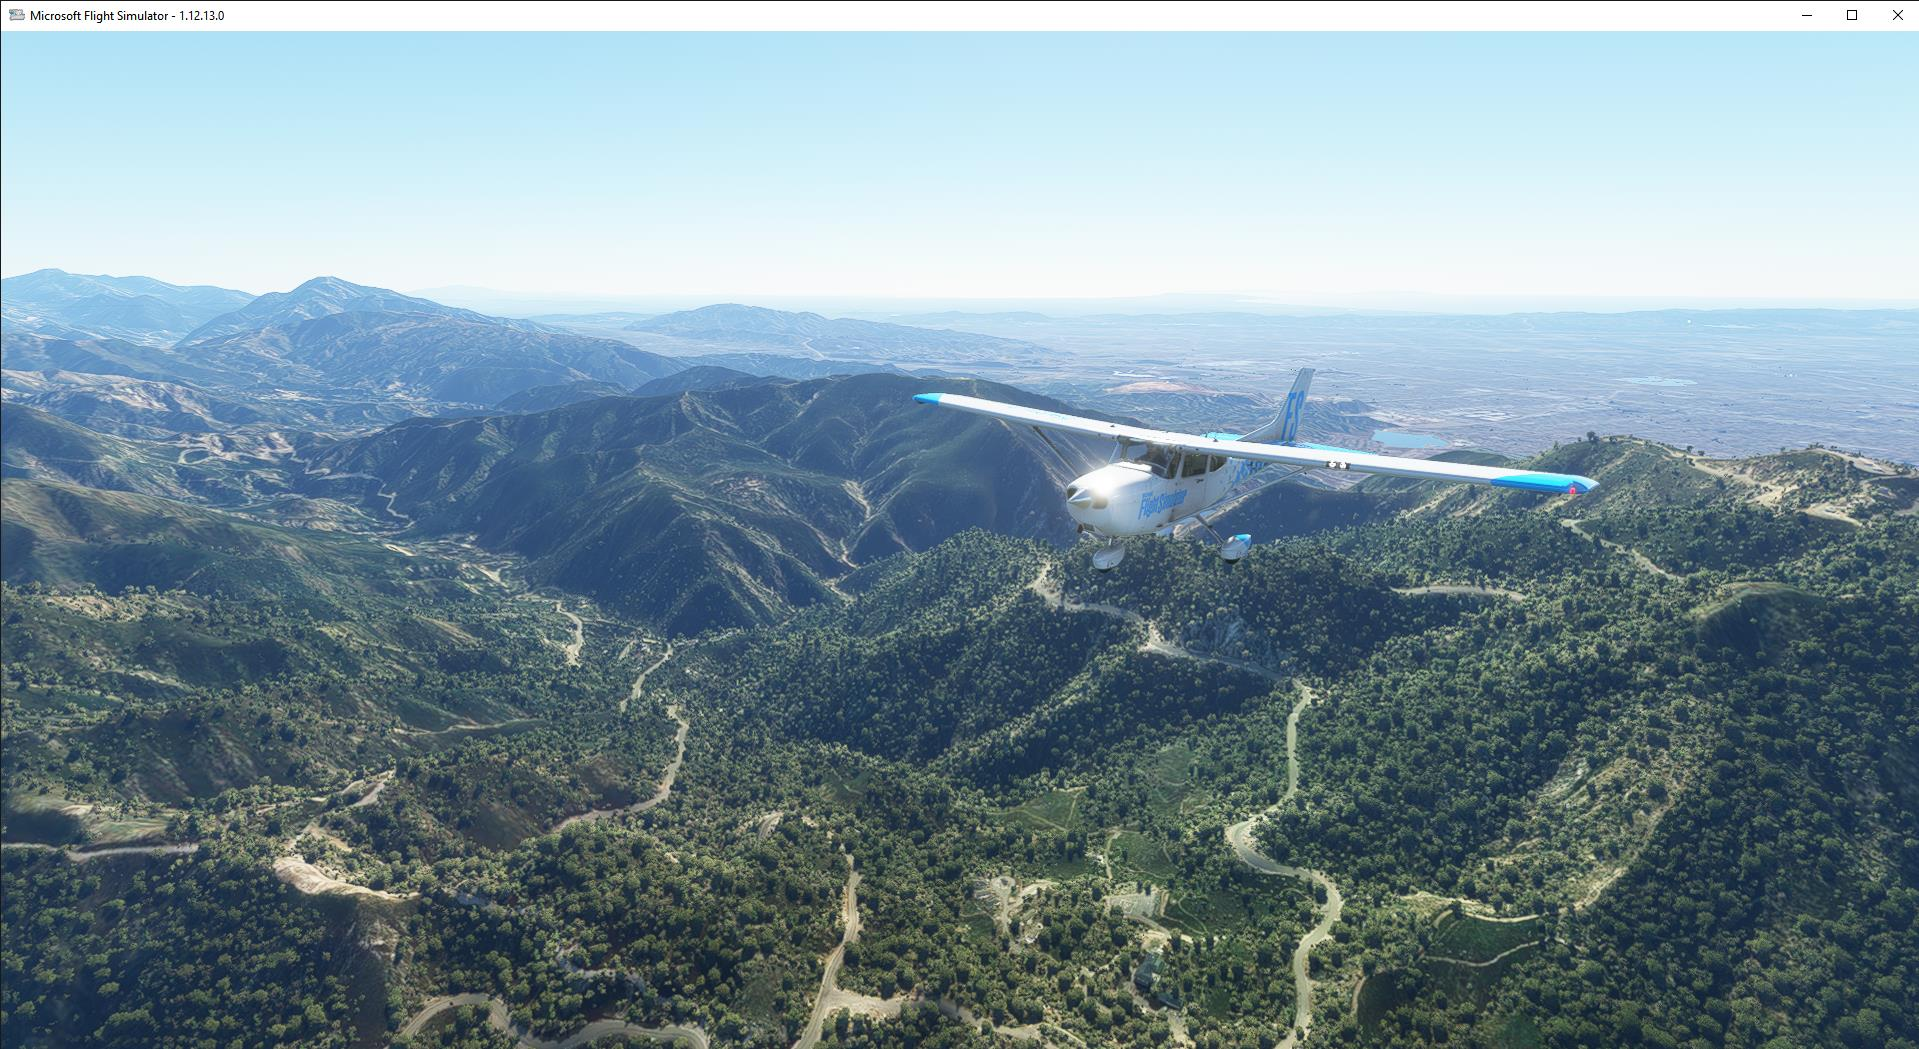 https://vivendobyte.blob.core.windows.net/57784/Microsoft Flight Simulator - 1.12.13.0 12_01_2021 21_26_06.jpg